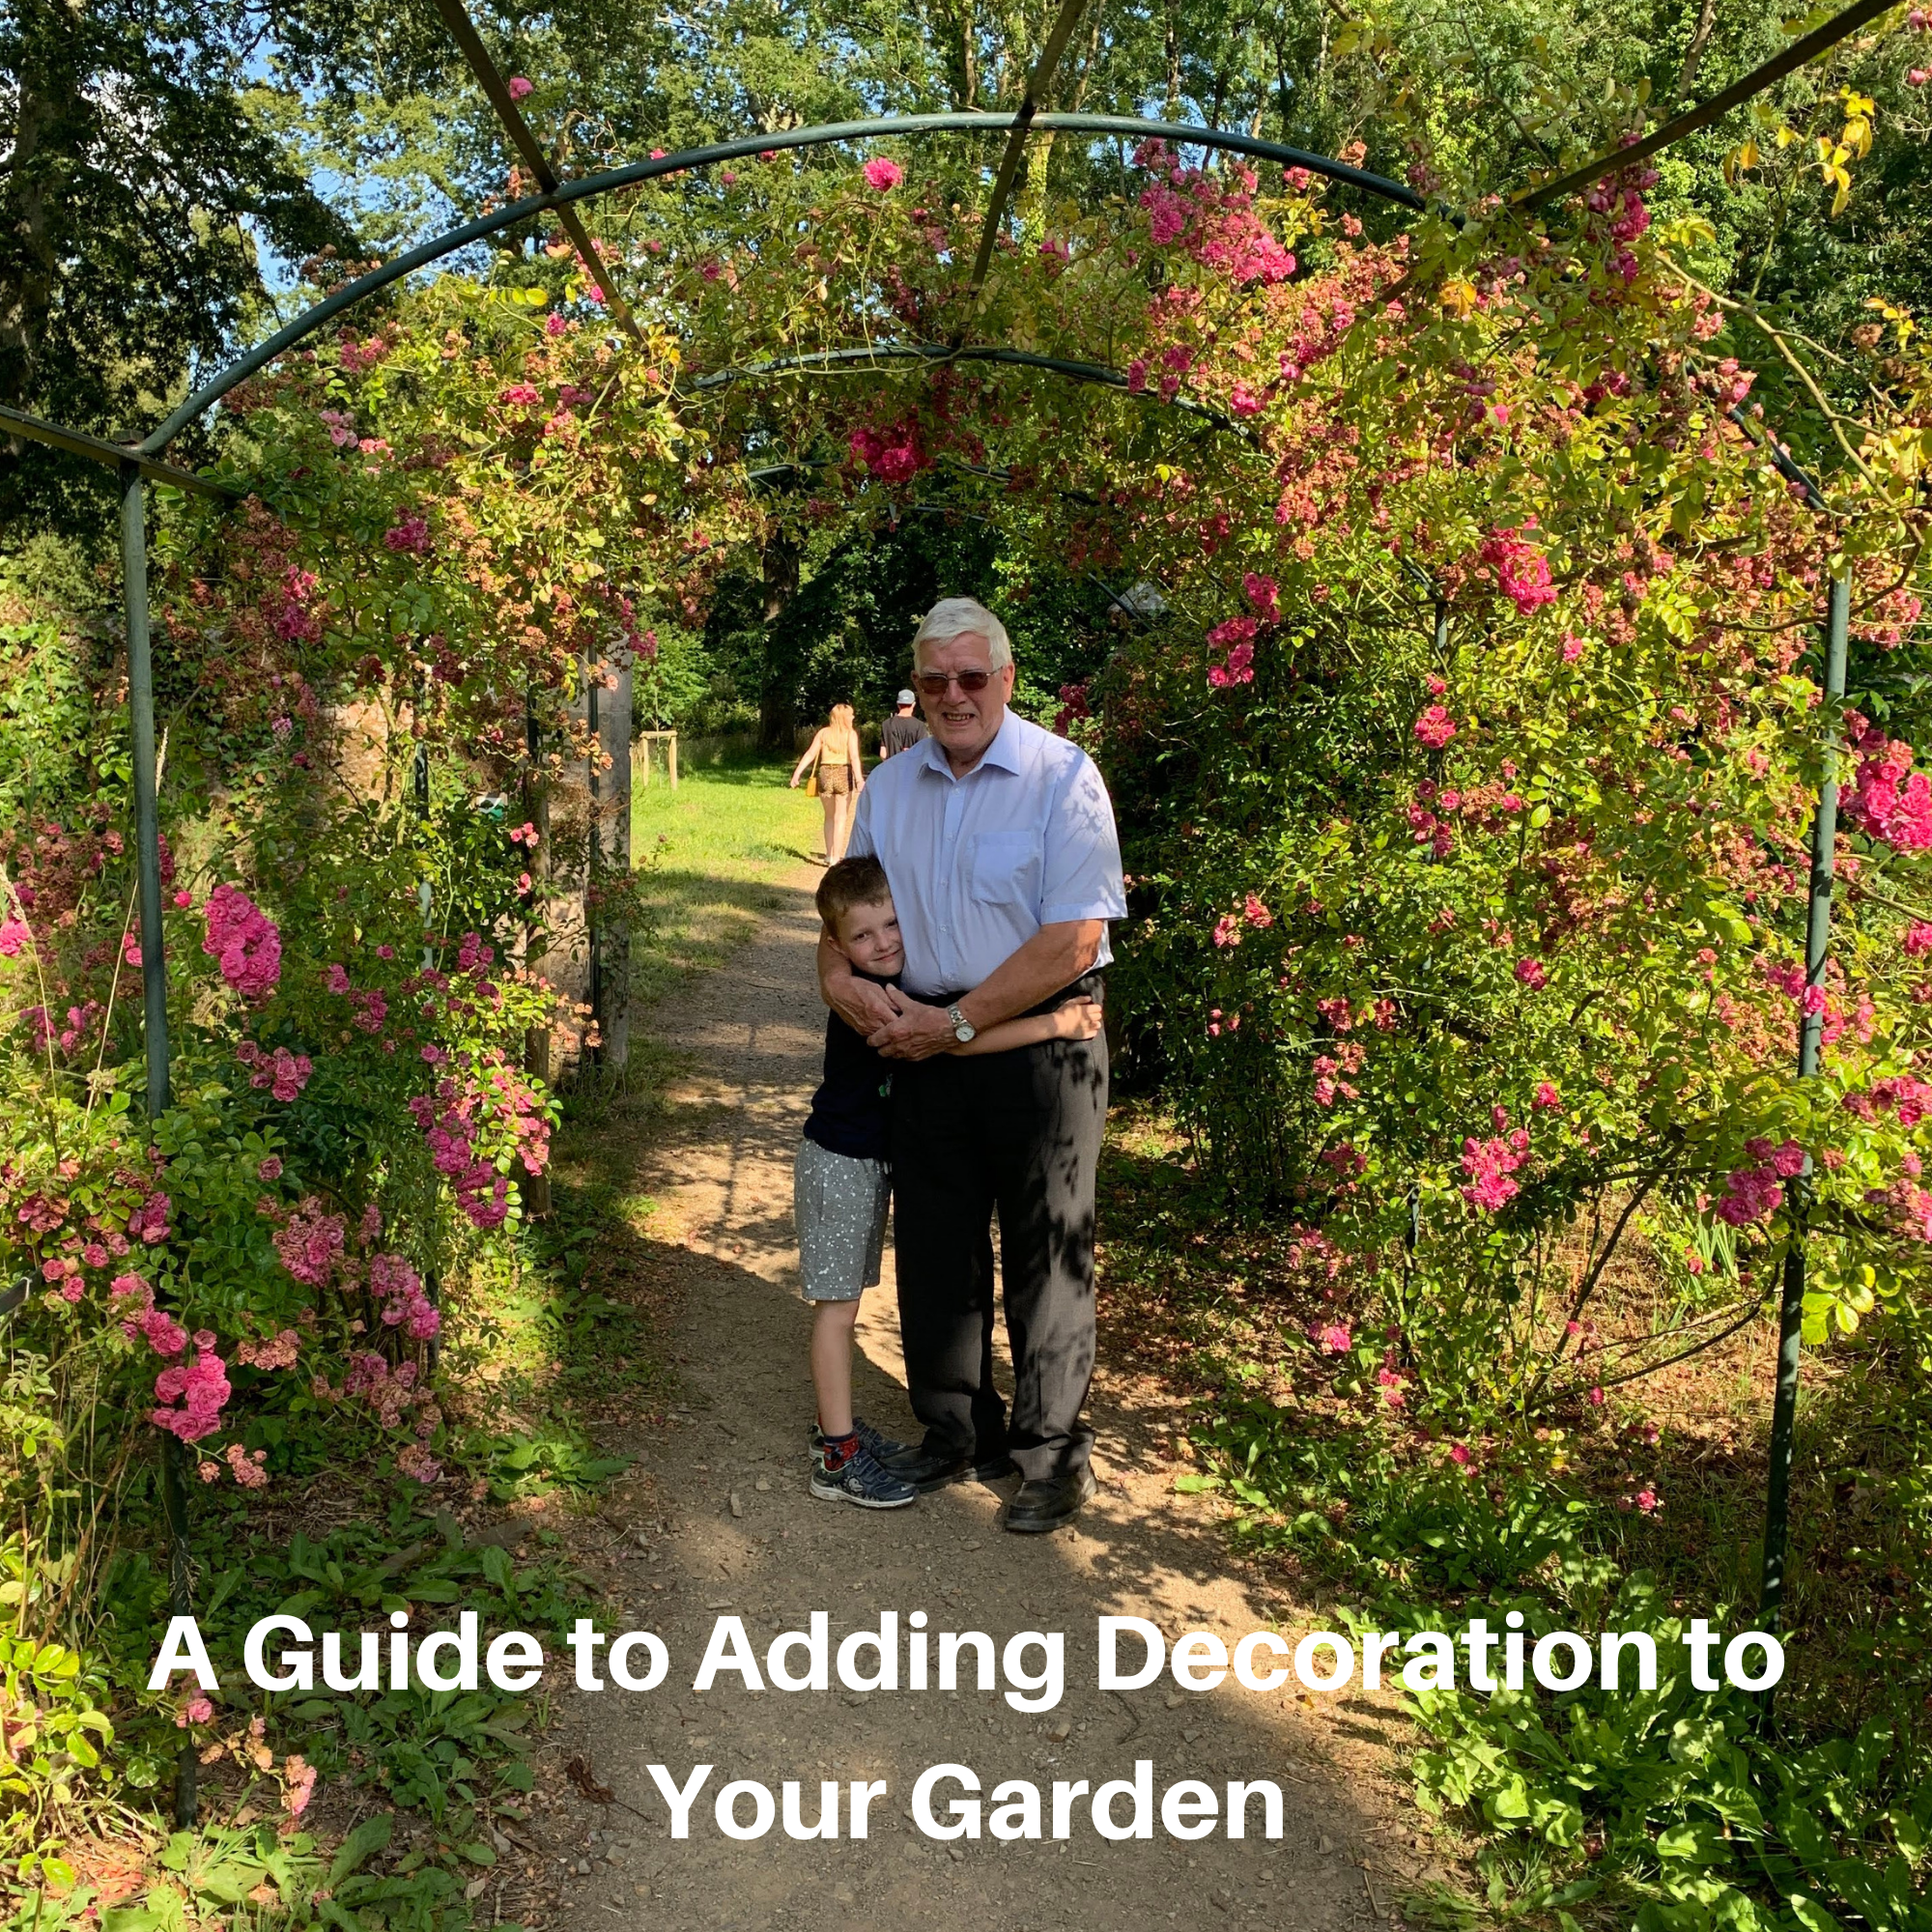 A Guide to Adding Decoration to Your Garden